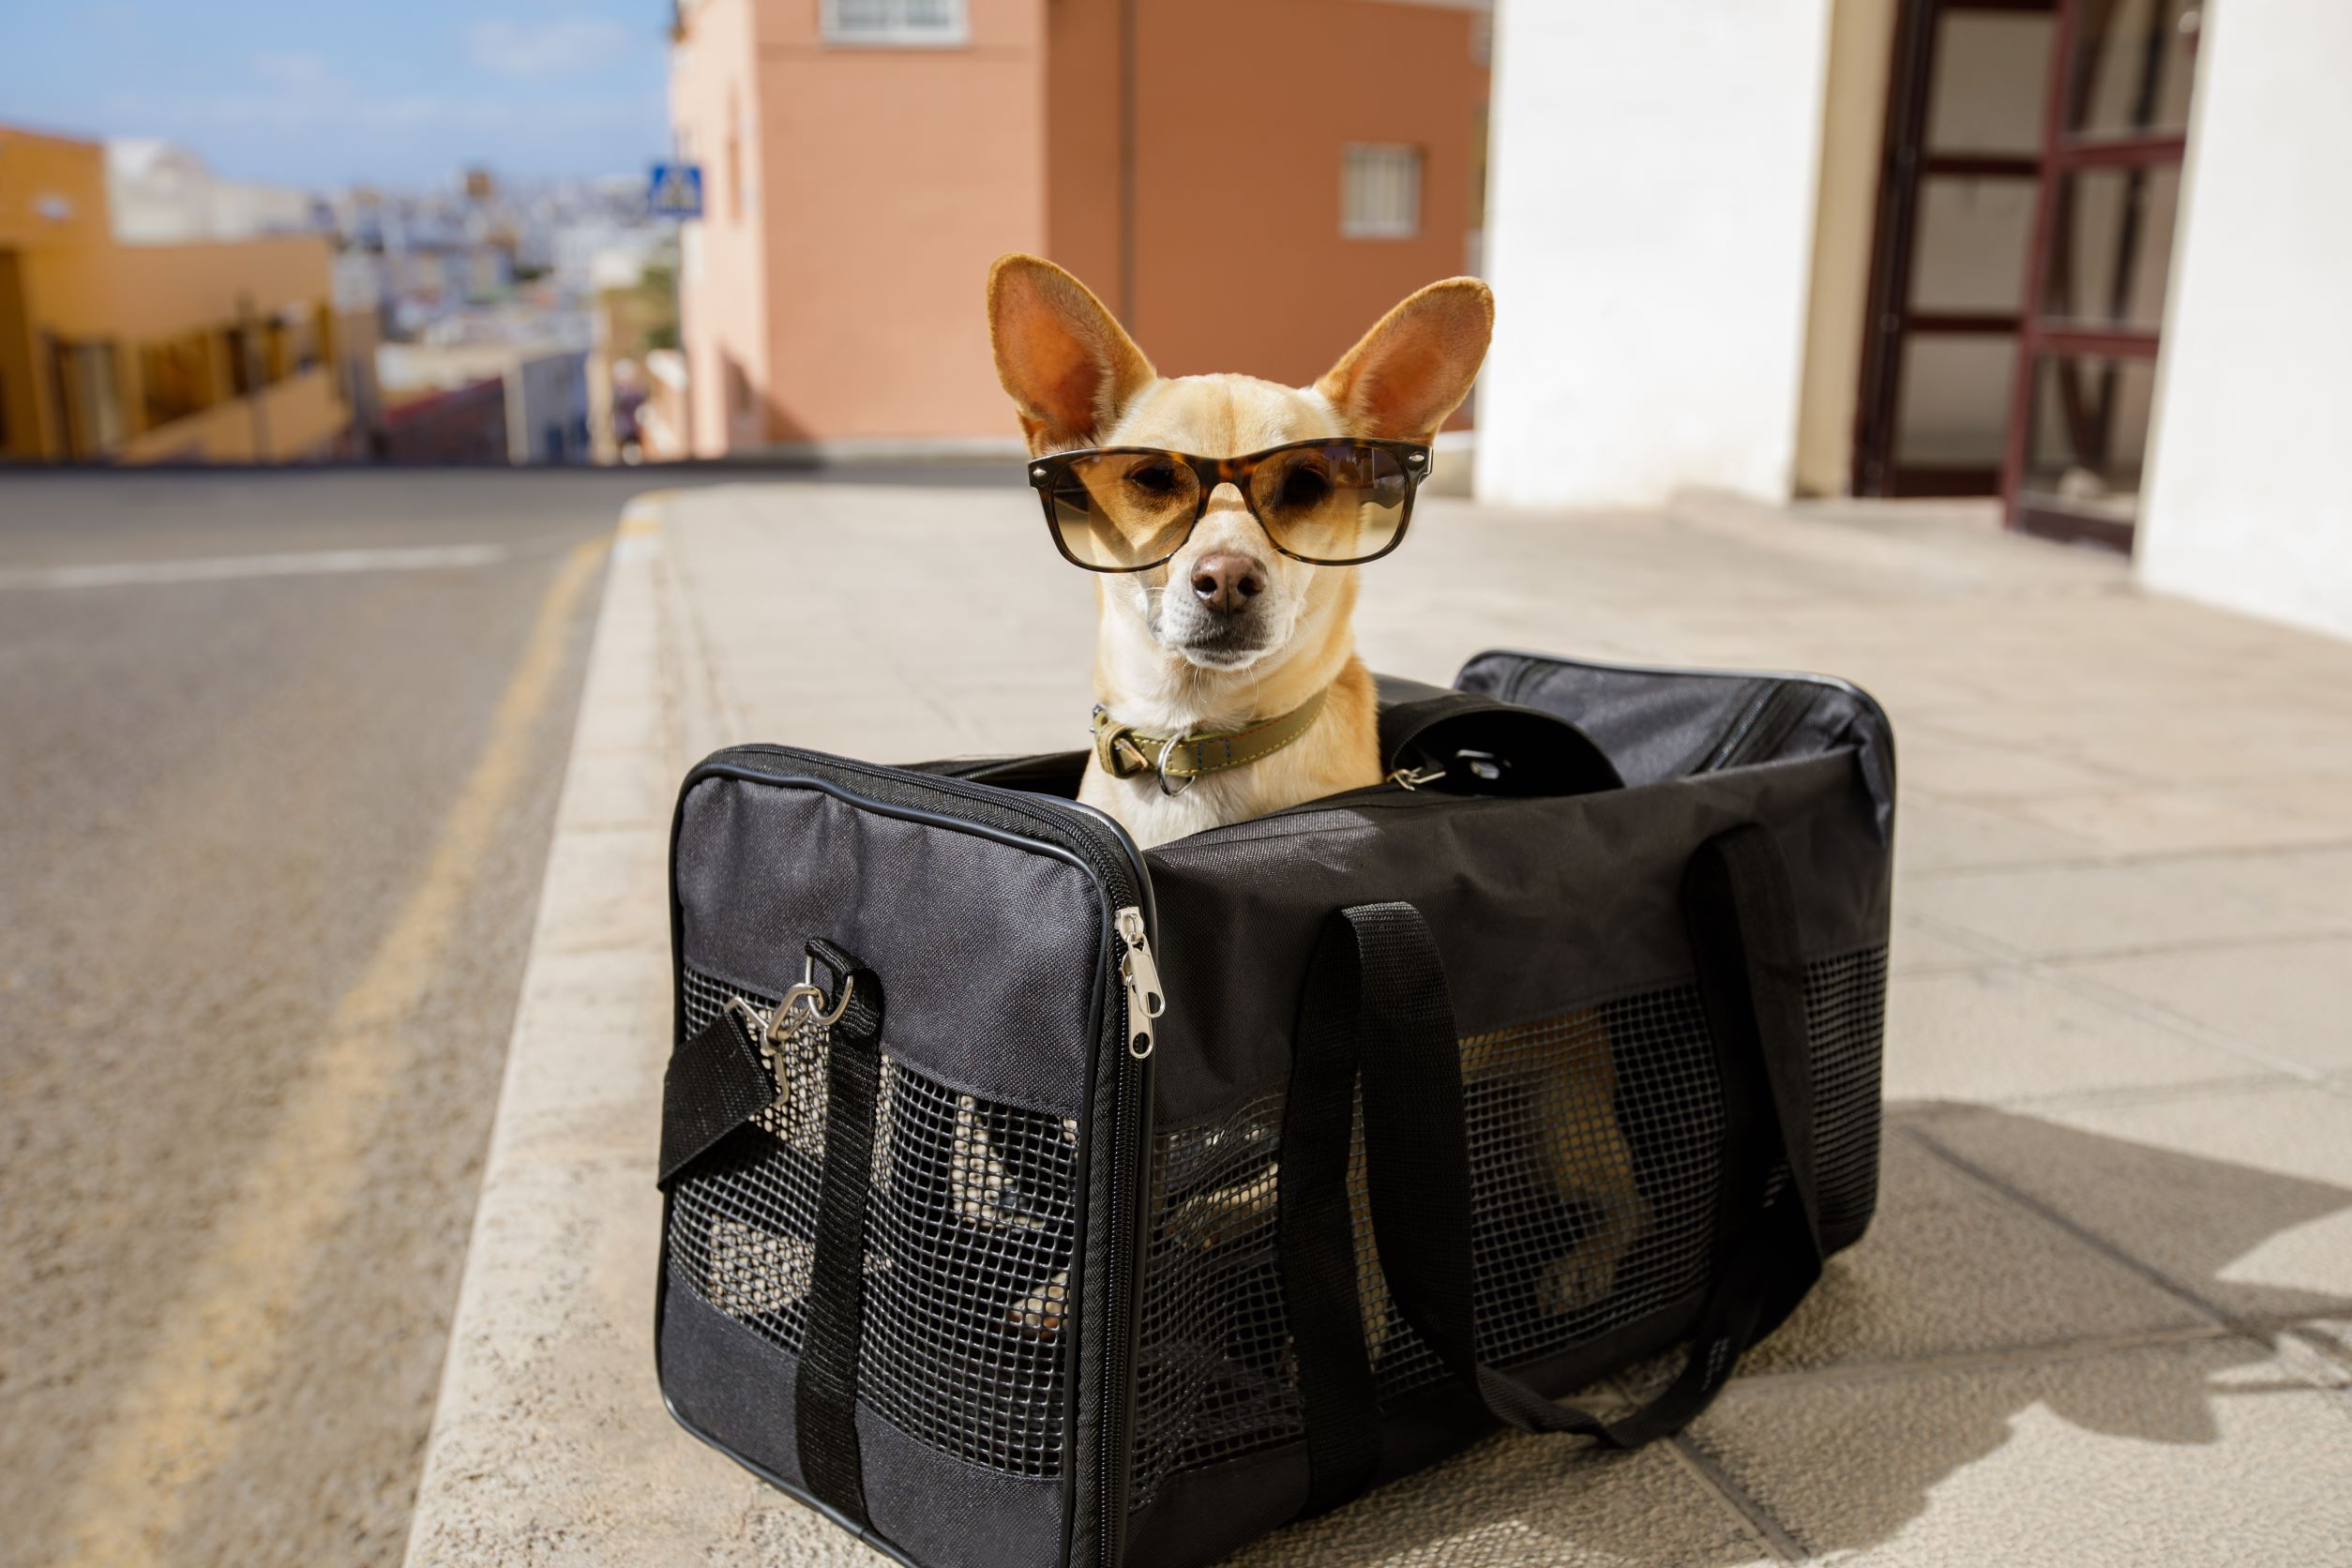 Park with onestopparking.com and fly with your dog